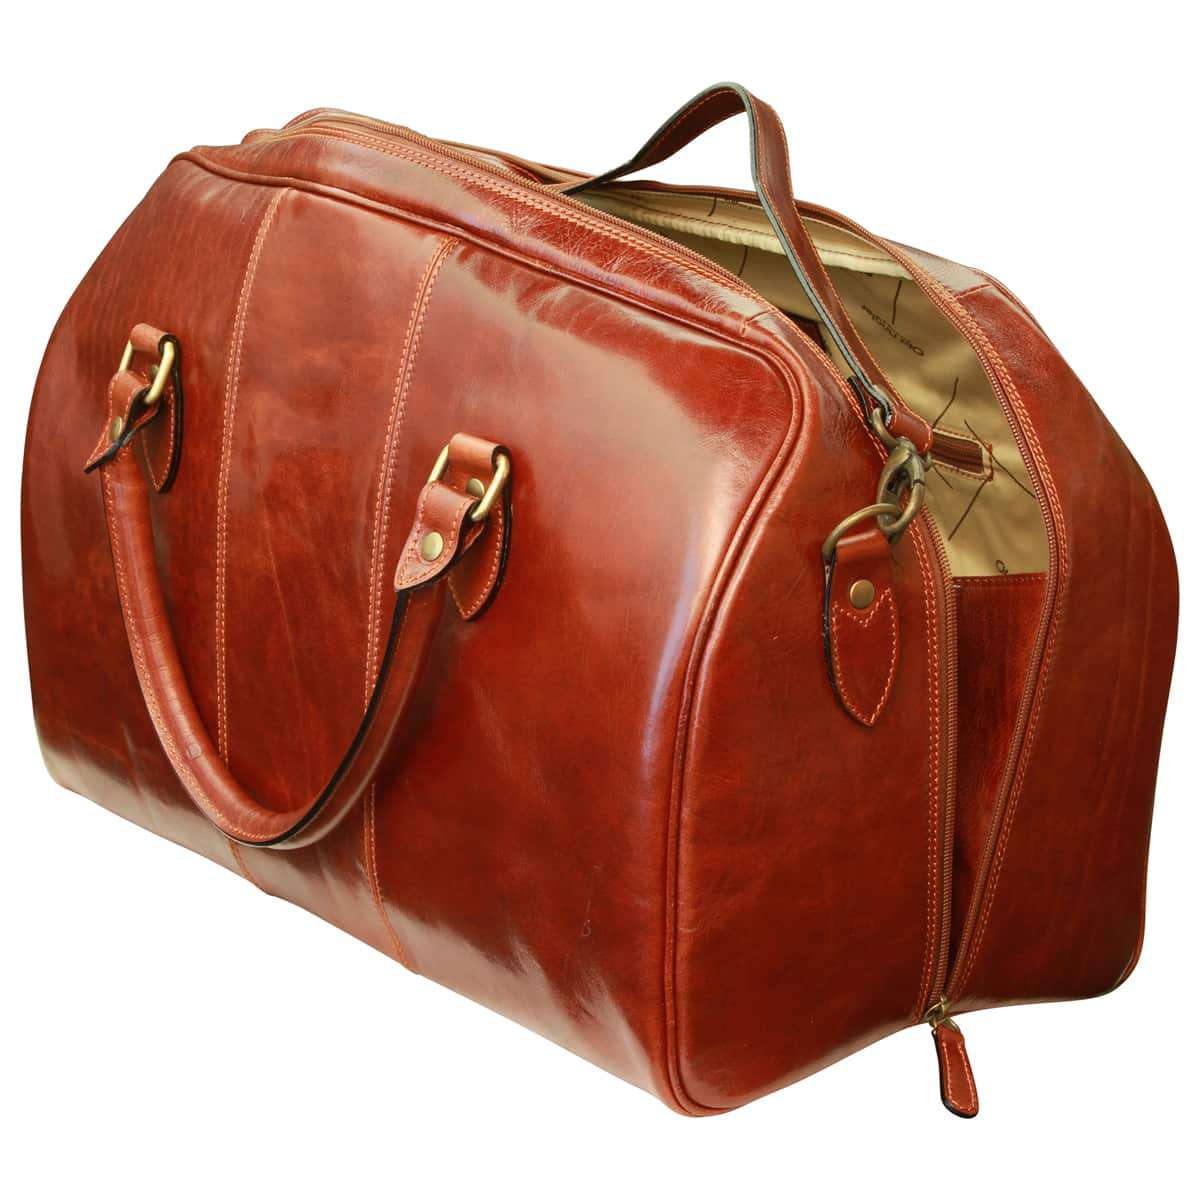 Leather duffel bag with zip closure - Brown | 407005MA UK | Old Angler Firenze